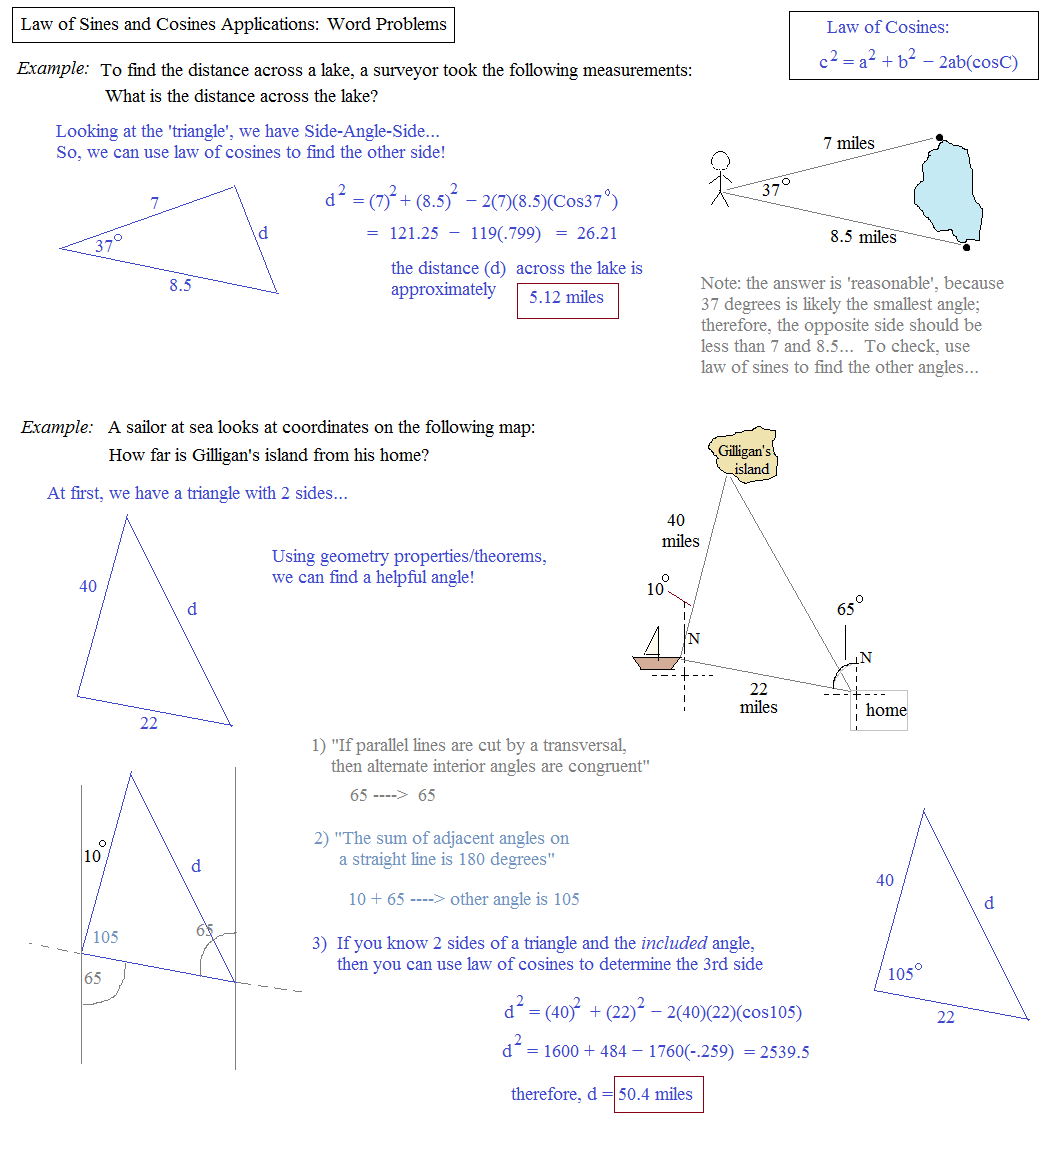 Workbooks inverse trigonometric functions problems worksheets : Math Plane - Law of Sines and Cosines & Area of Triangles